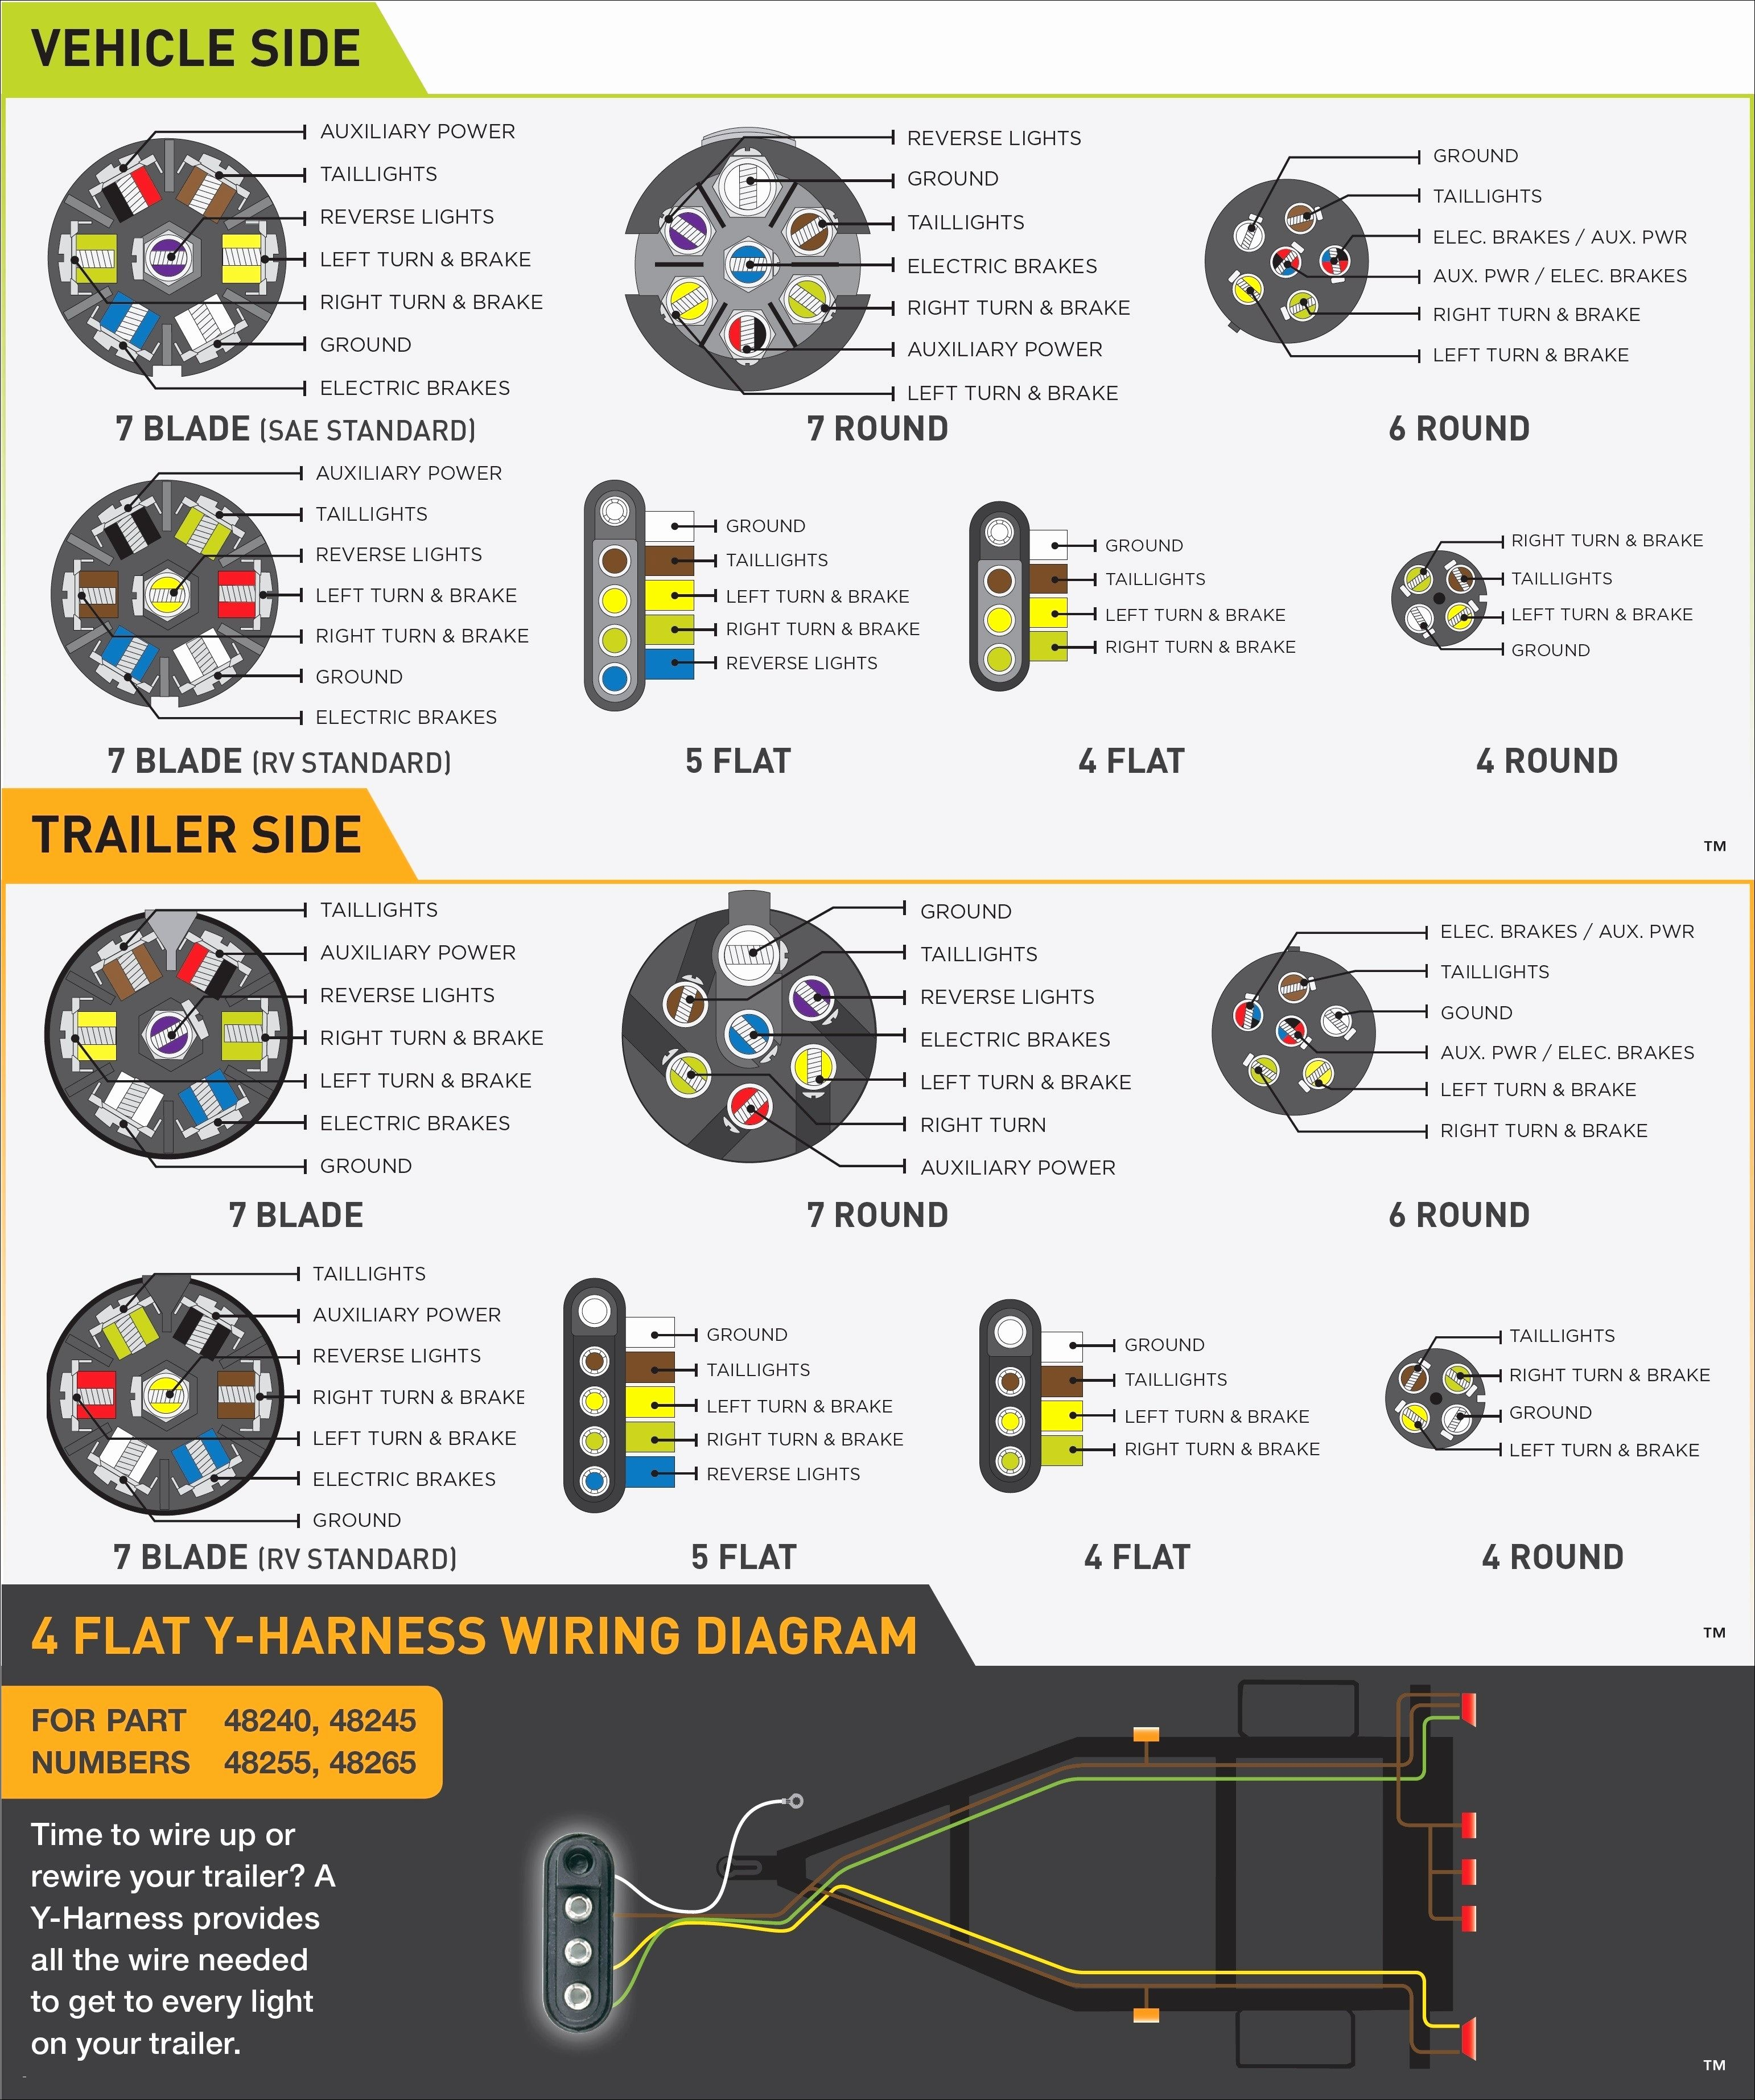 Anderson Trailers Wiring Diagram - Trusted Wiring Diagram Online - King Trailer Wiring Diagram